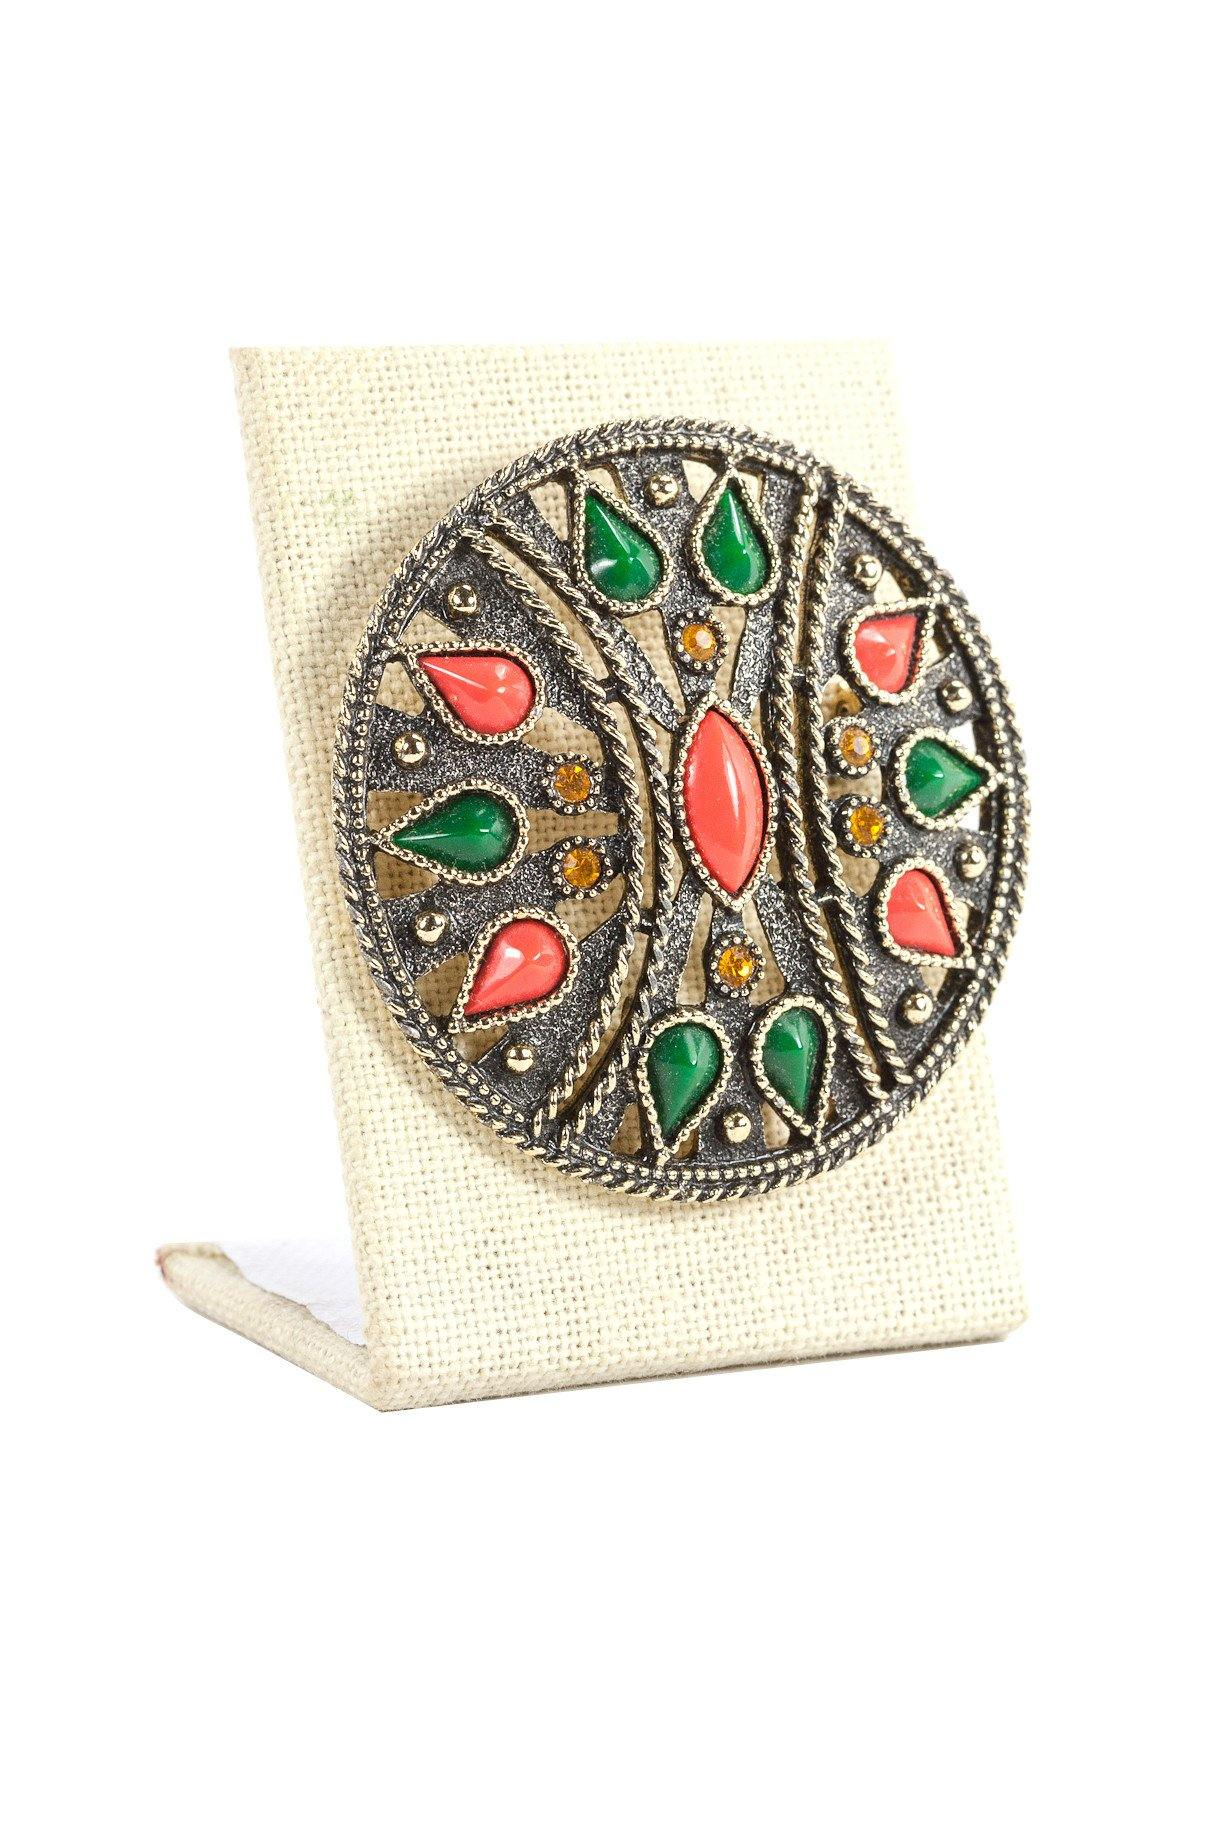 60's__Emmons__Tiled Disc Brooch